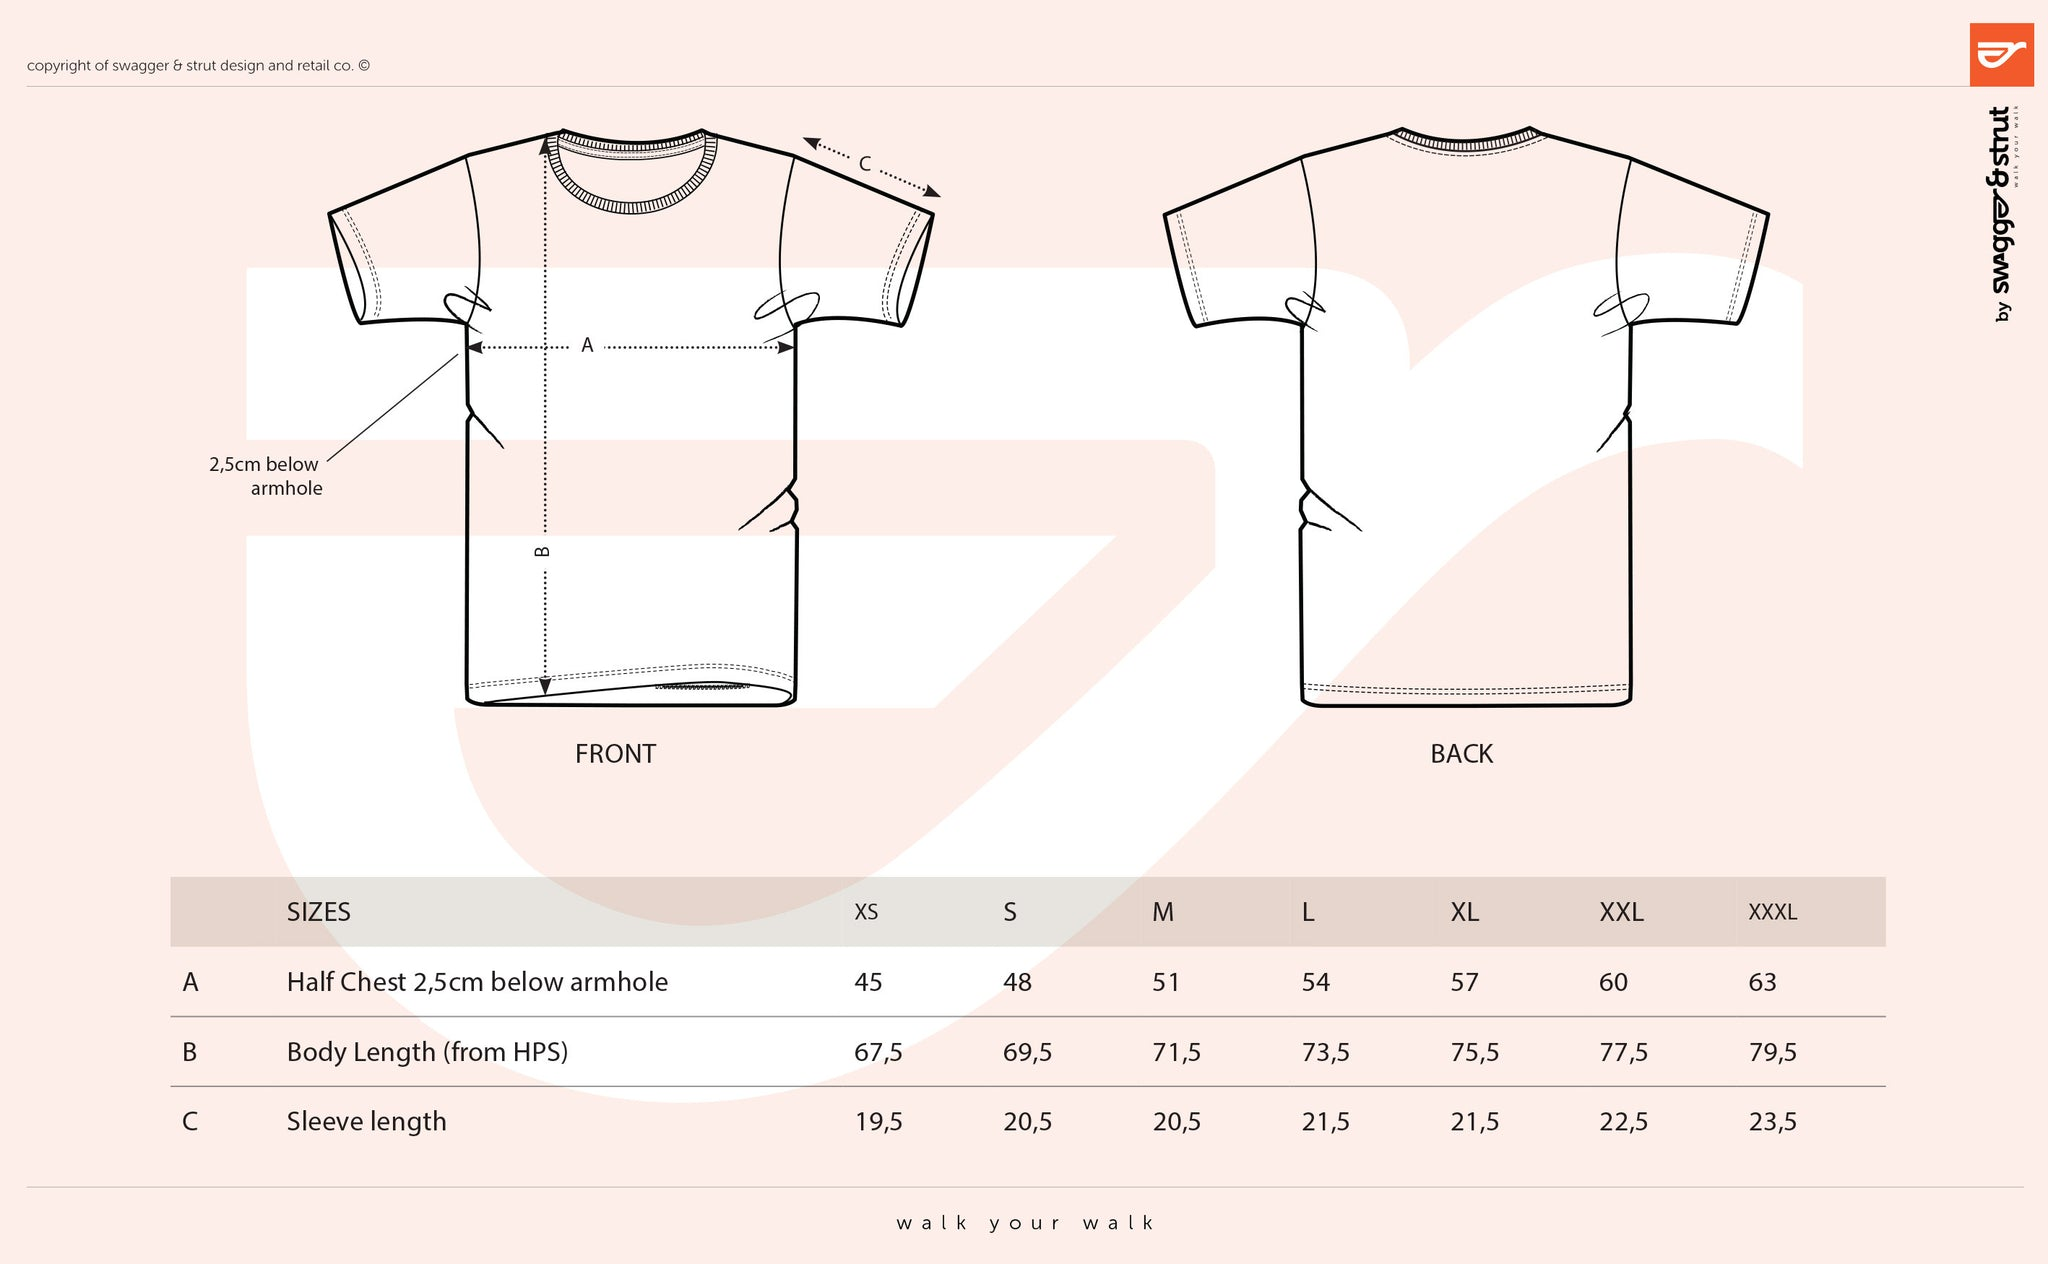 Organic Round Neck TShirt SIZE CHART MEASUREMENTS - T shirt design size template